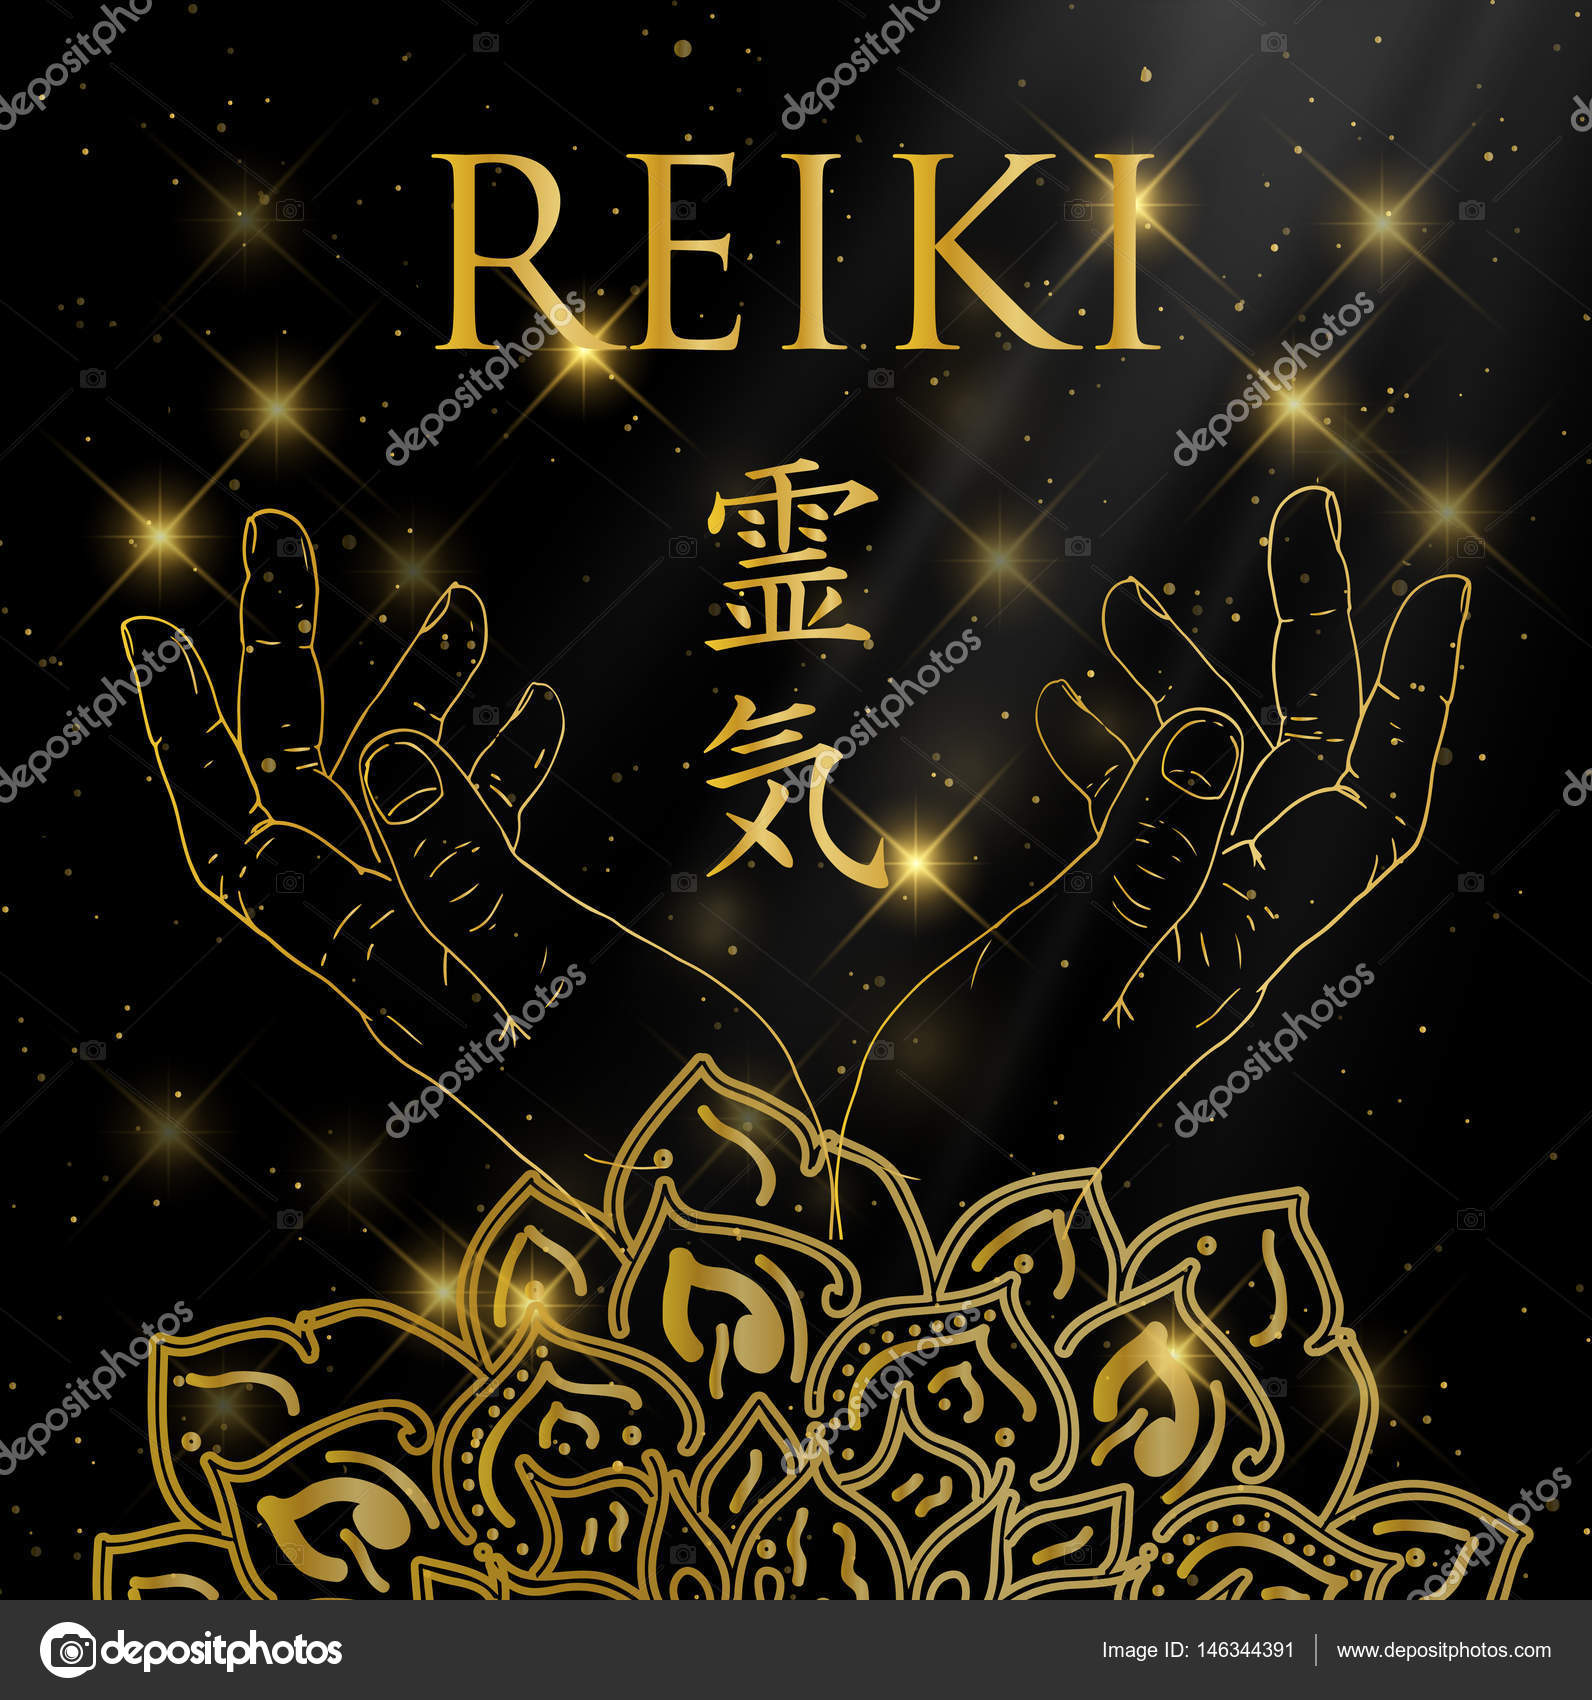 Sacred geometry reiki symbol stock vector queenann555gmail reiki symbol the word reiki is made up of two japanese words rei means universal ki means life force energy vector by queenann555gmail biocorpaavc